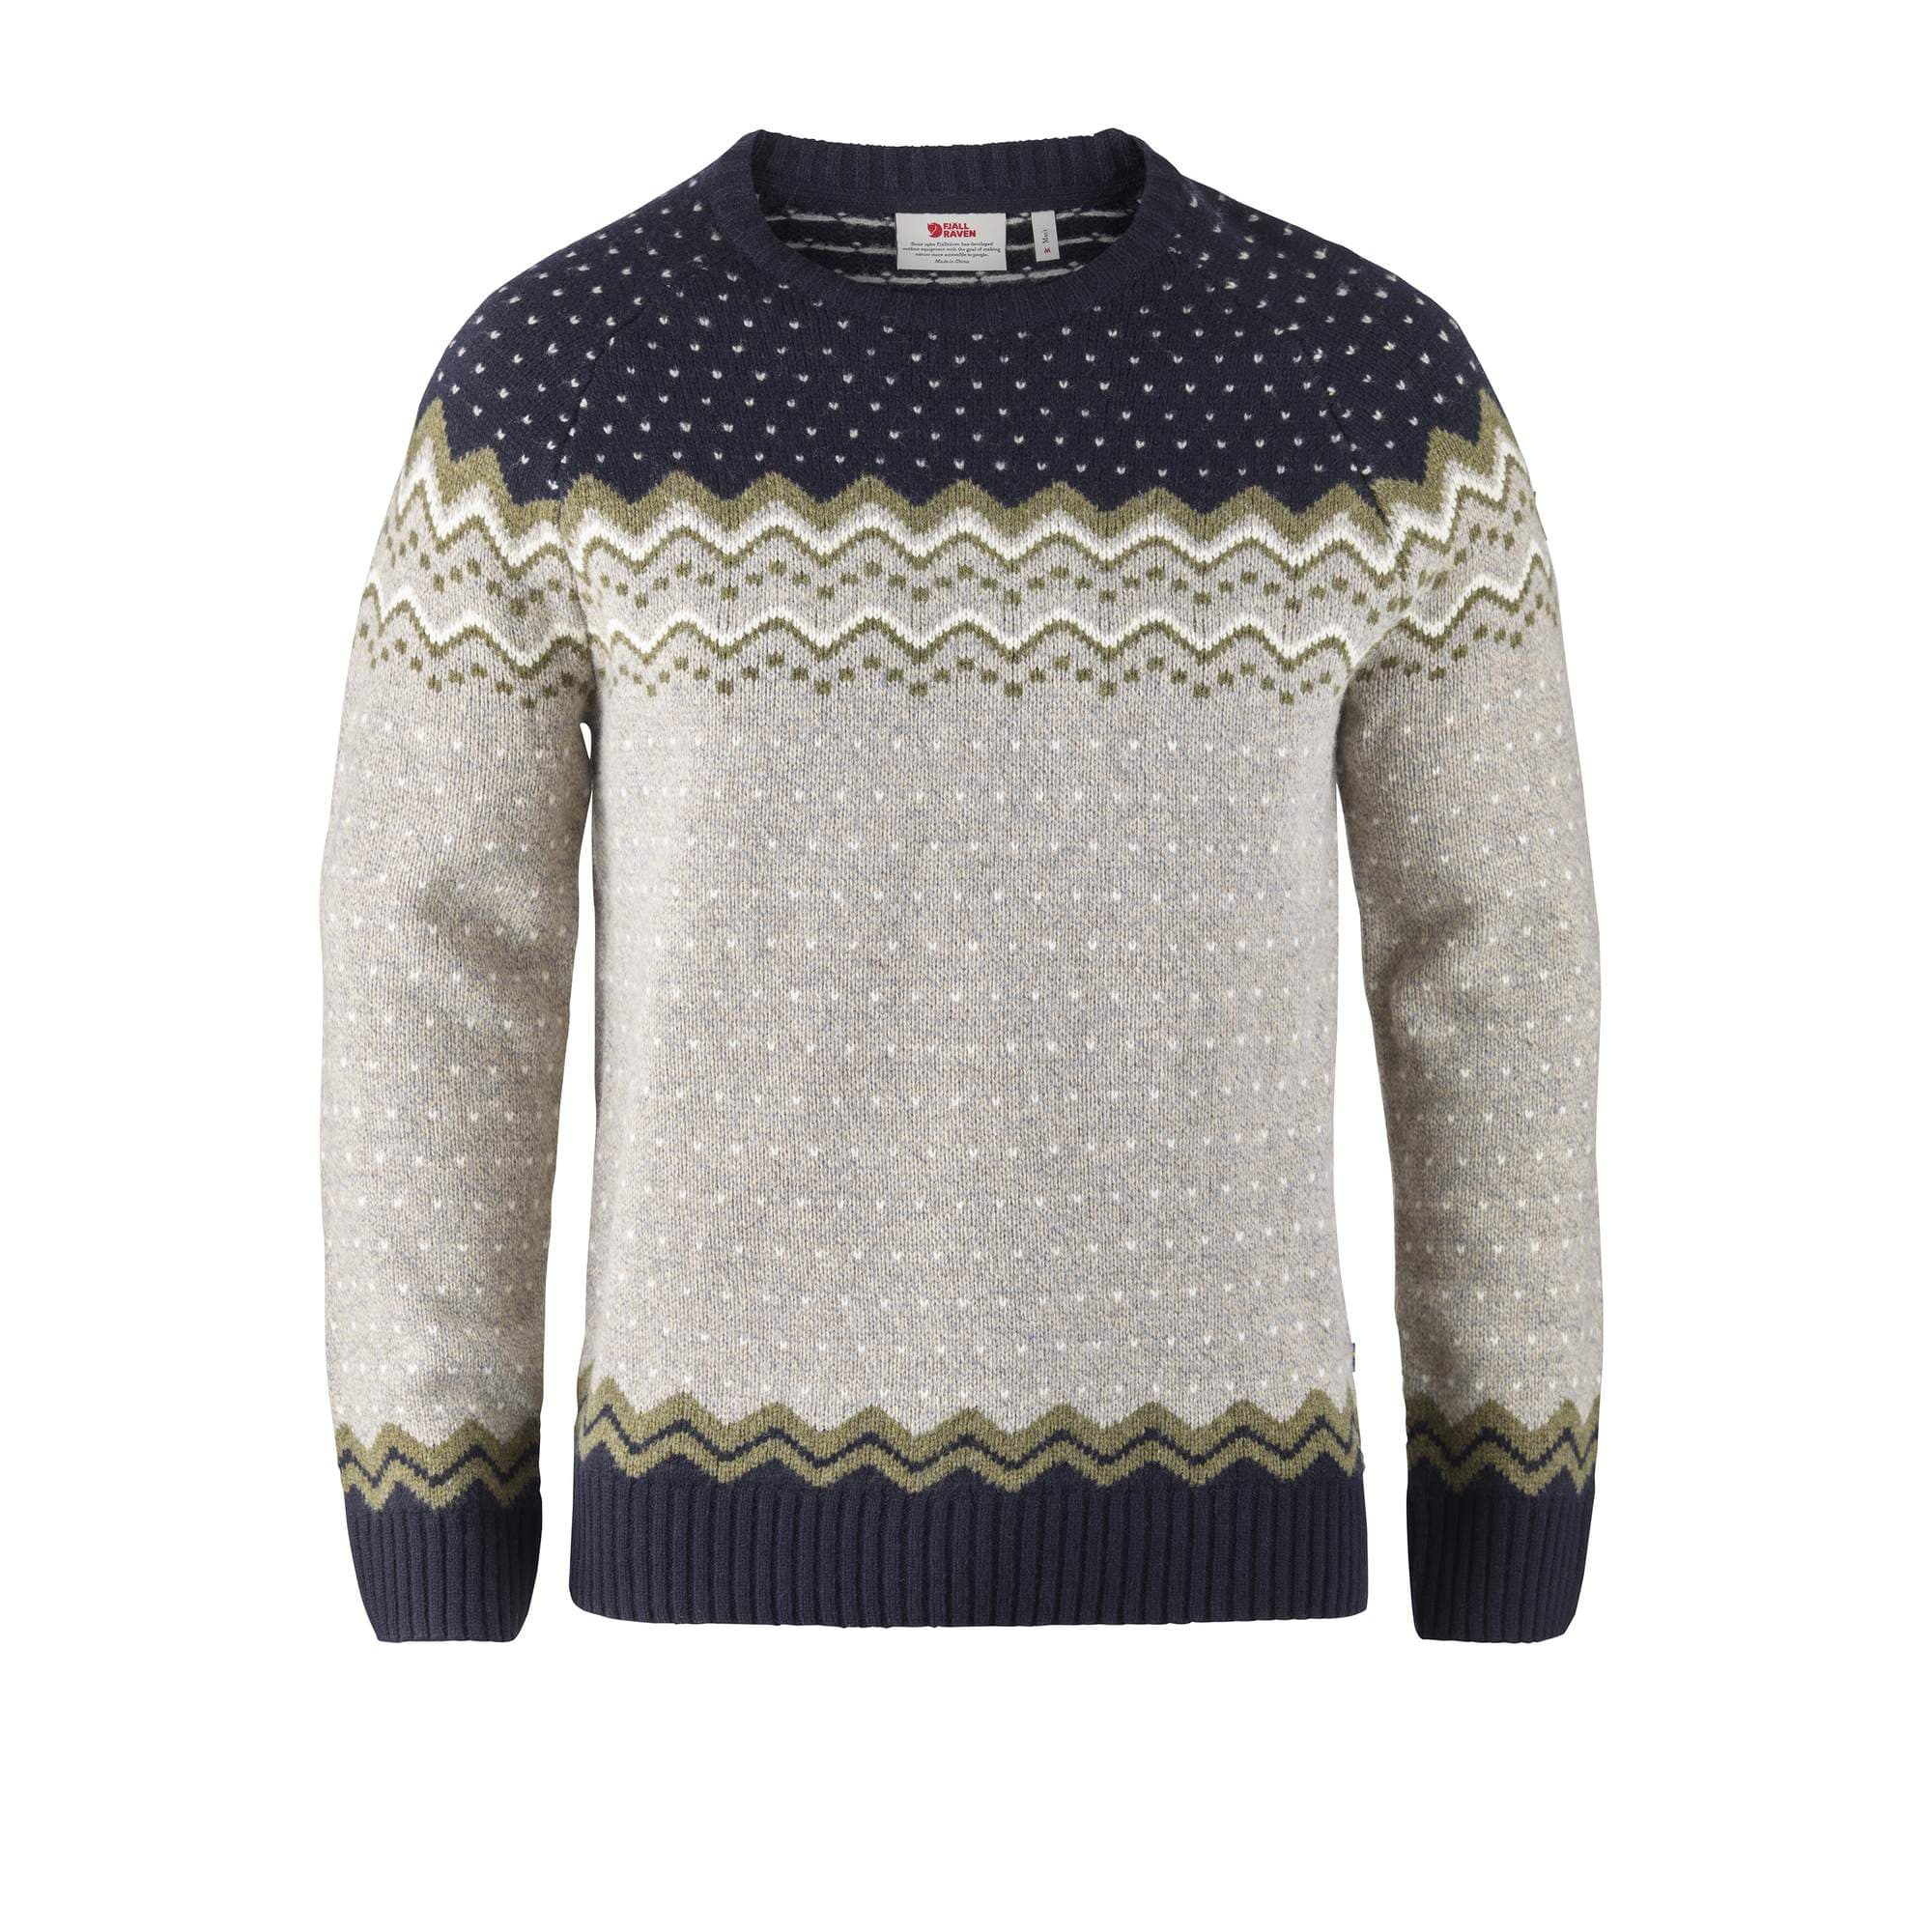 Fjall Raven Ovik Knit Sweater *CLSL*